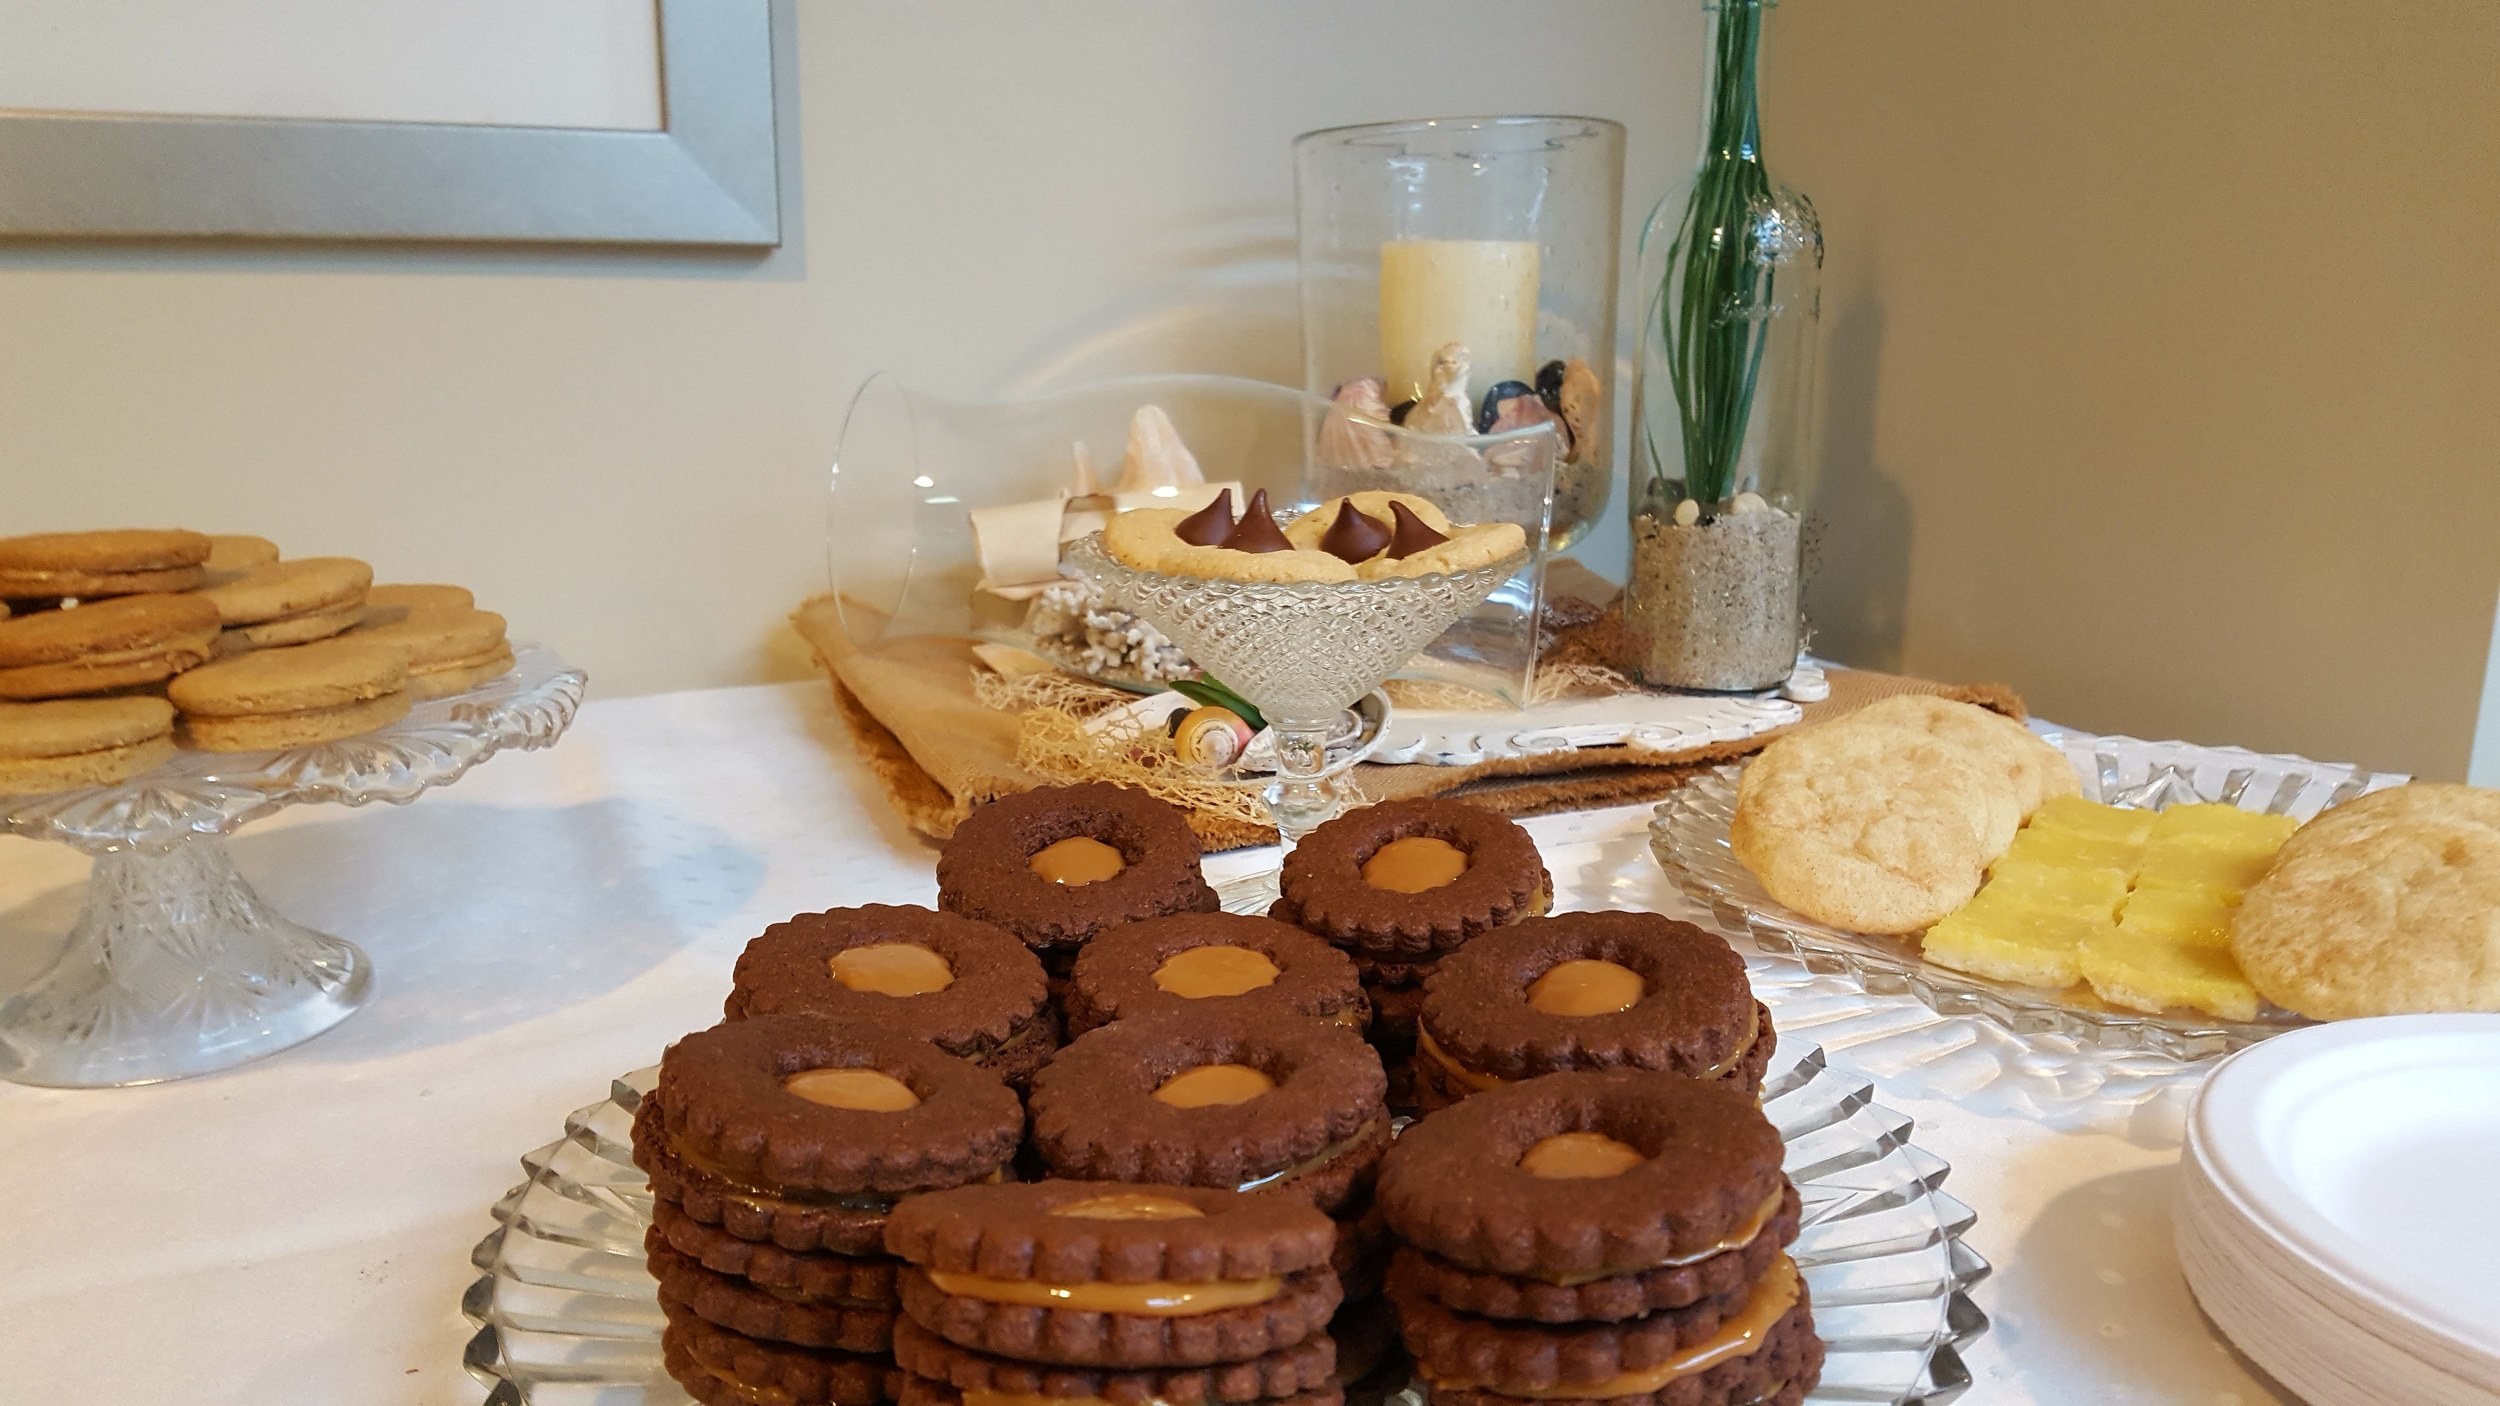 Plates of Cookies for our Guests at the Tea.